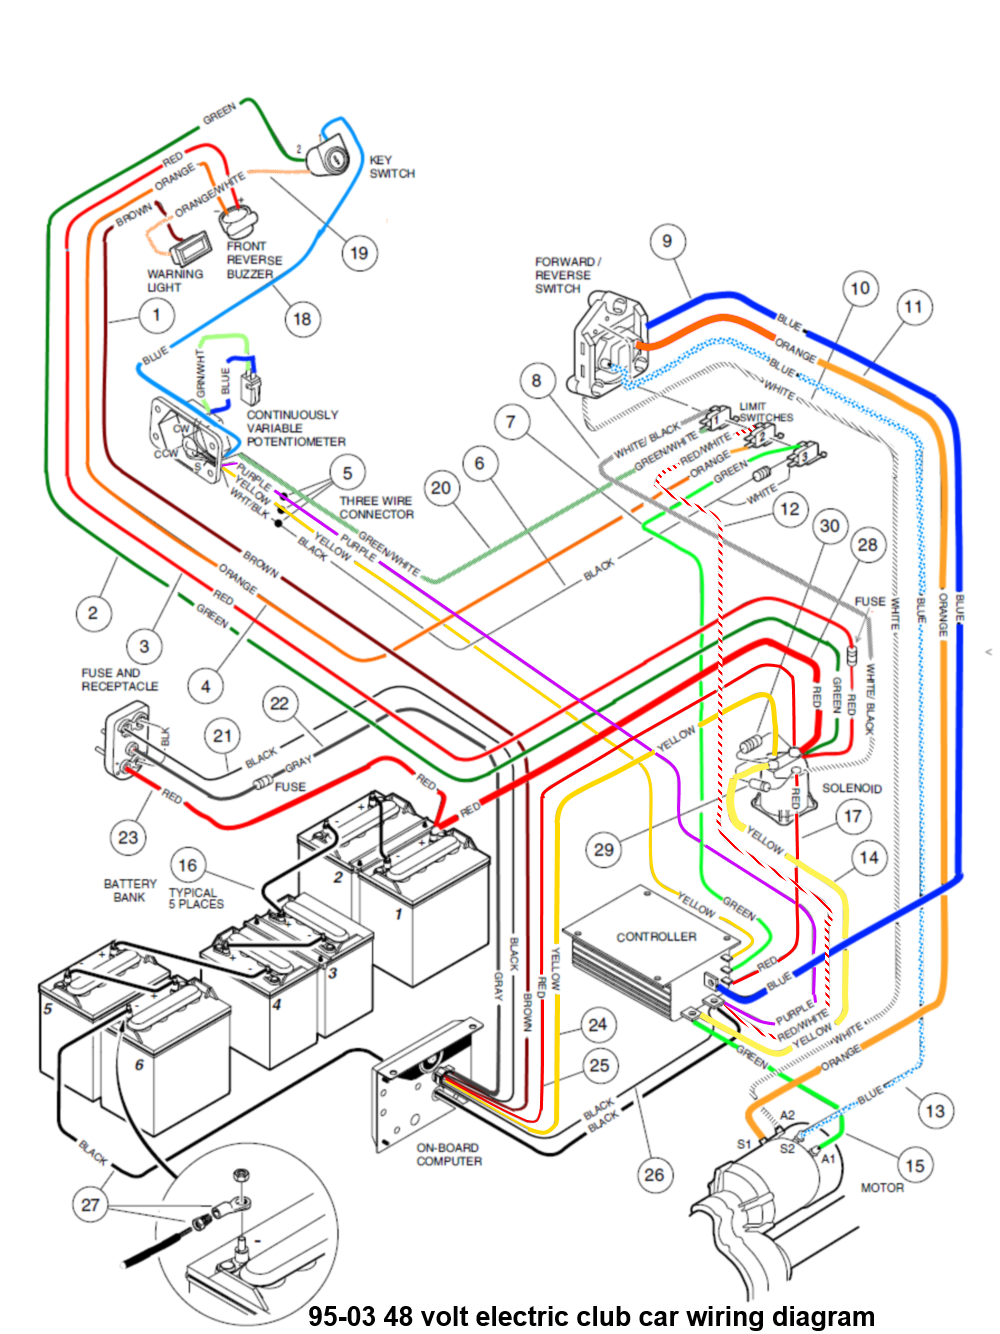 Great Club Car Wiring Diagram 36 Volt 92 About Remodel New At On Club Car Wiring Diagram 36 Vol In 2021 Club Car Golf Cart Electrical Wiring Diagram Electric Golf Cart